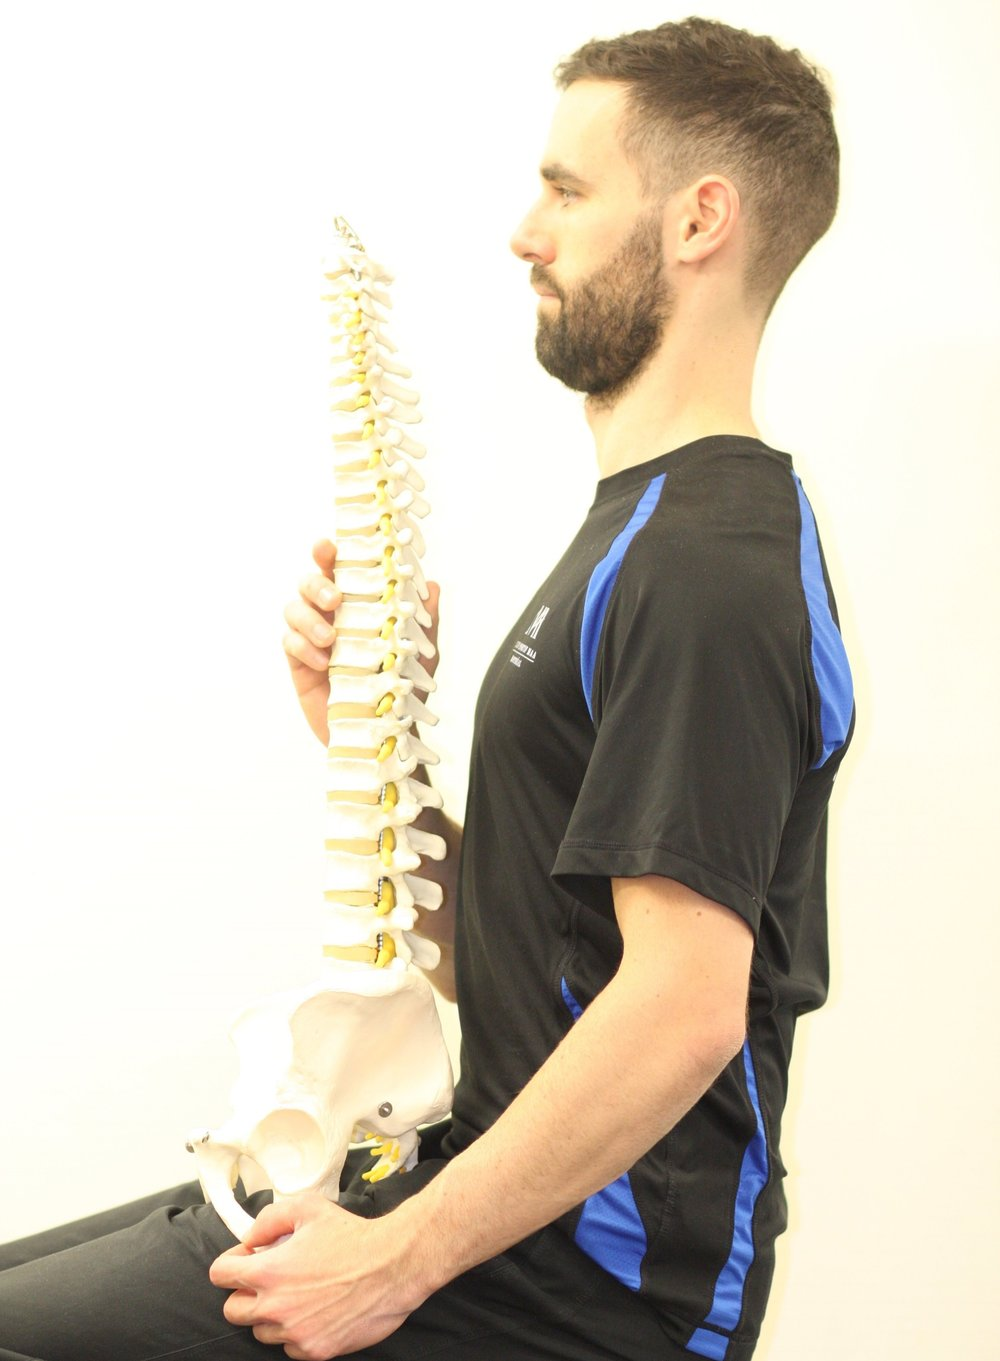 A straight, but not neutral, spine position